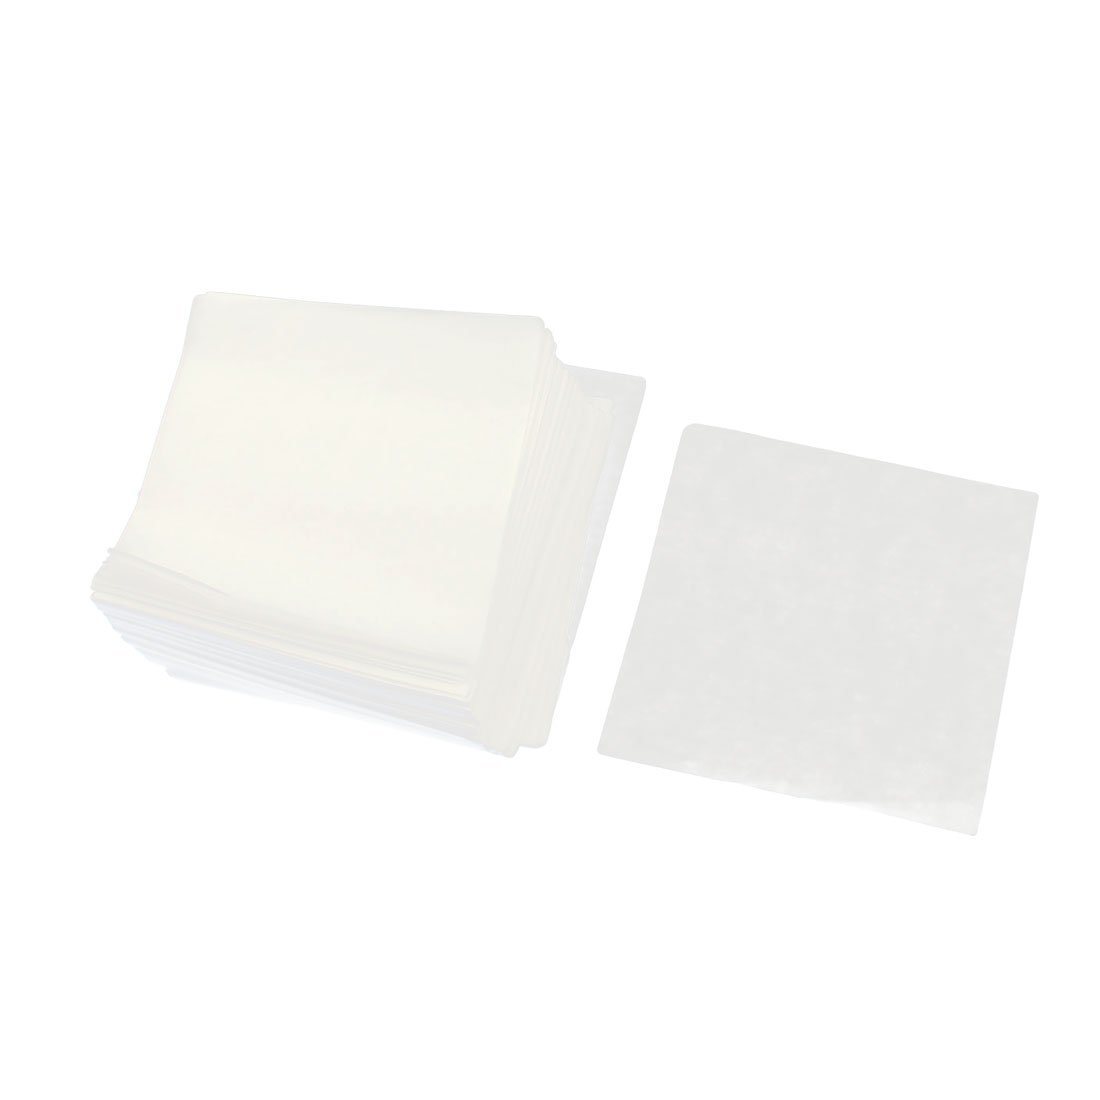 uxcell Popular product 500pcs Laboratory Analytical Cheap bargain Shaped Paper Square Weighing